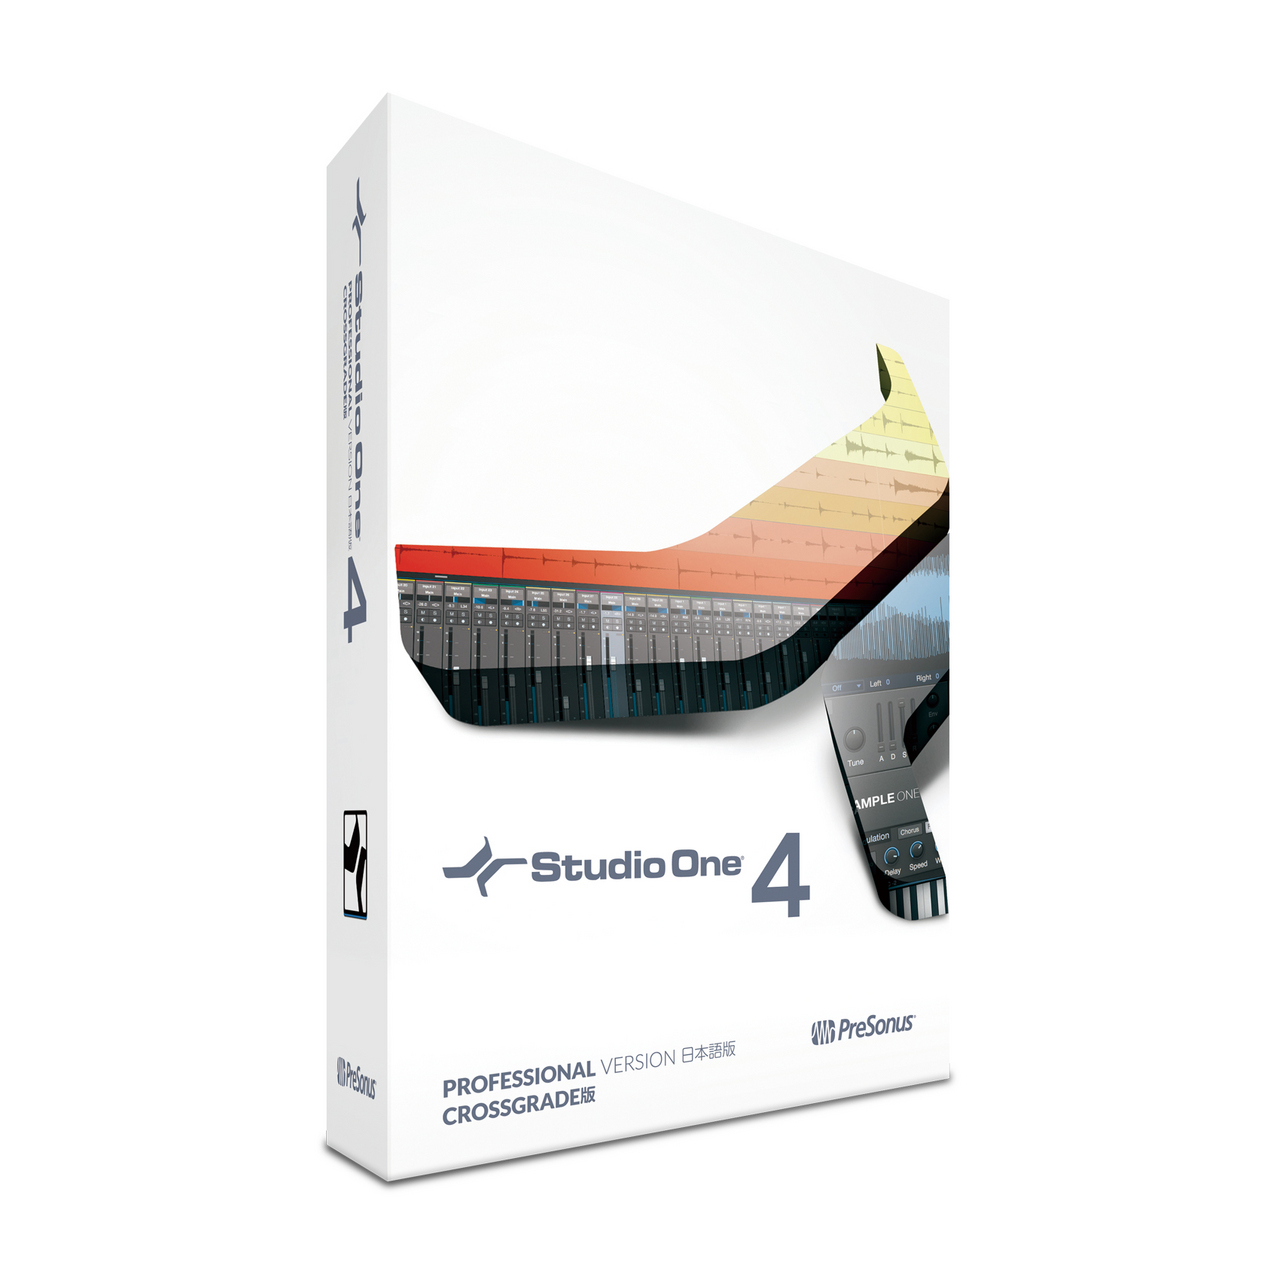 PreSonus Studio One 4 Crossgrade Japanese version (box) [long-awaited major version up!]